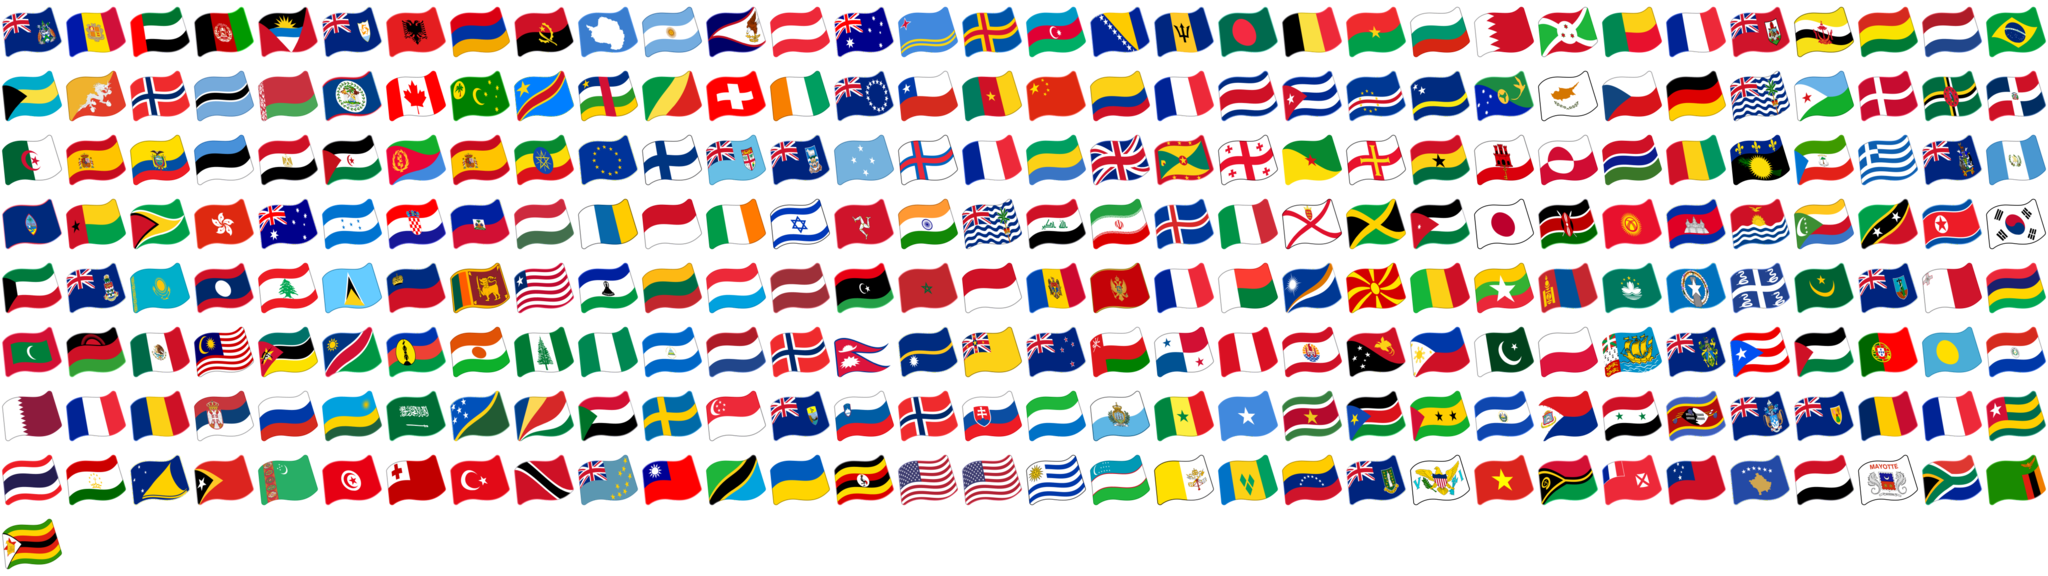 briar-android/src/main/assets/emoji_flags.png